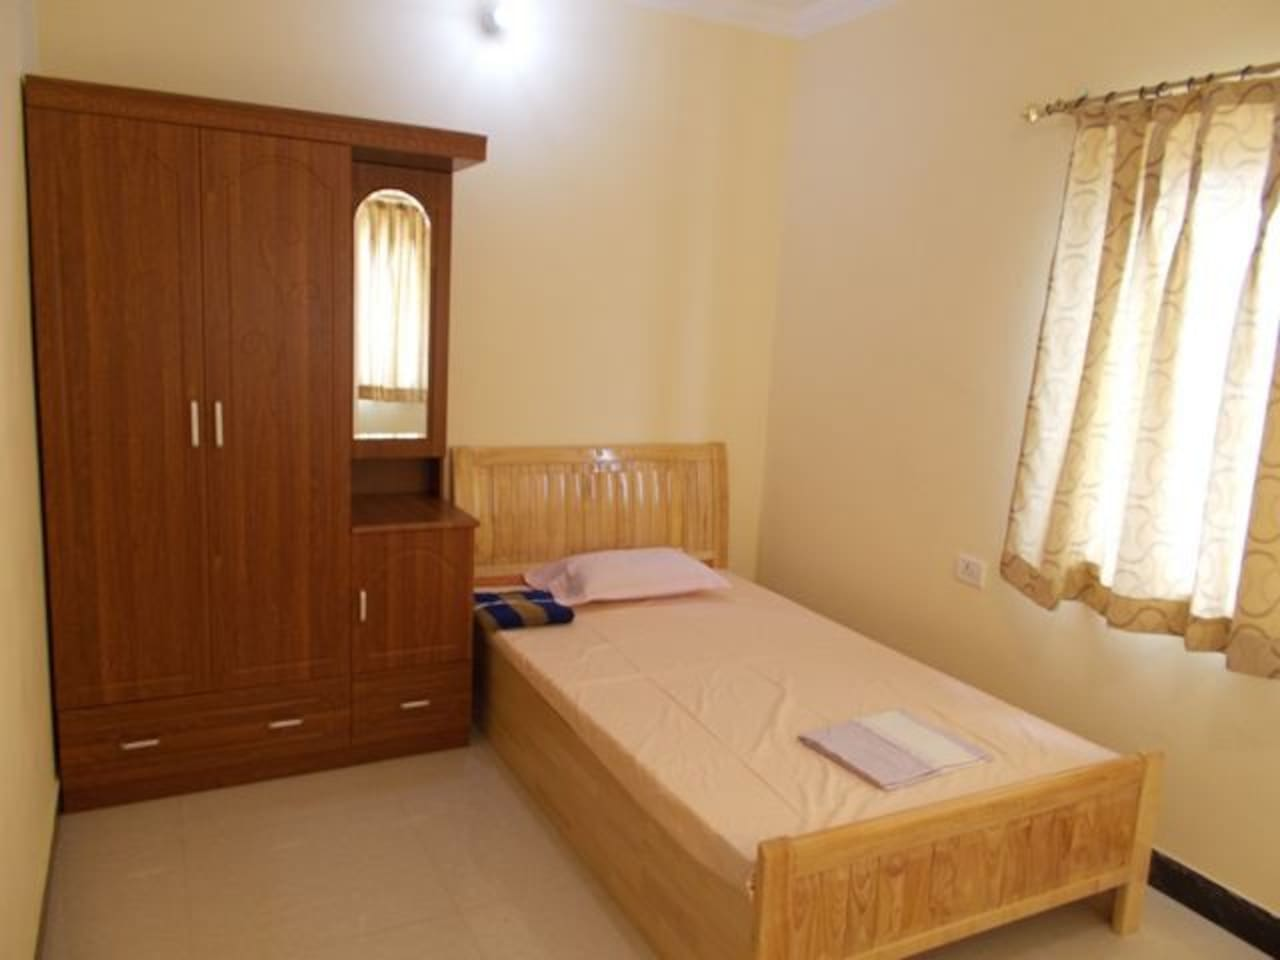 Ventilated furnished Bedroom with wardrobe.